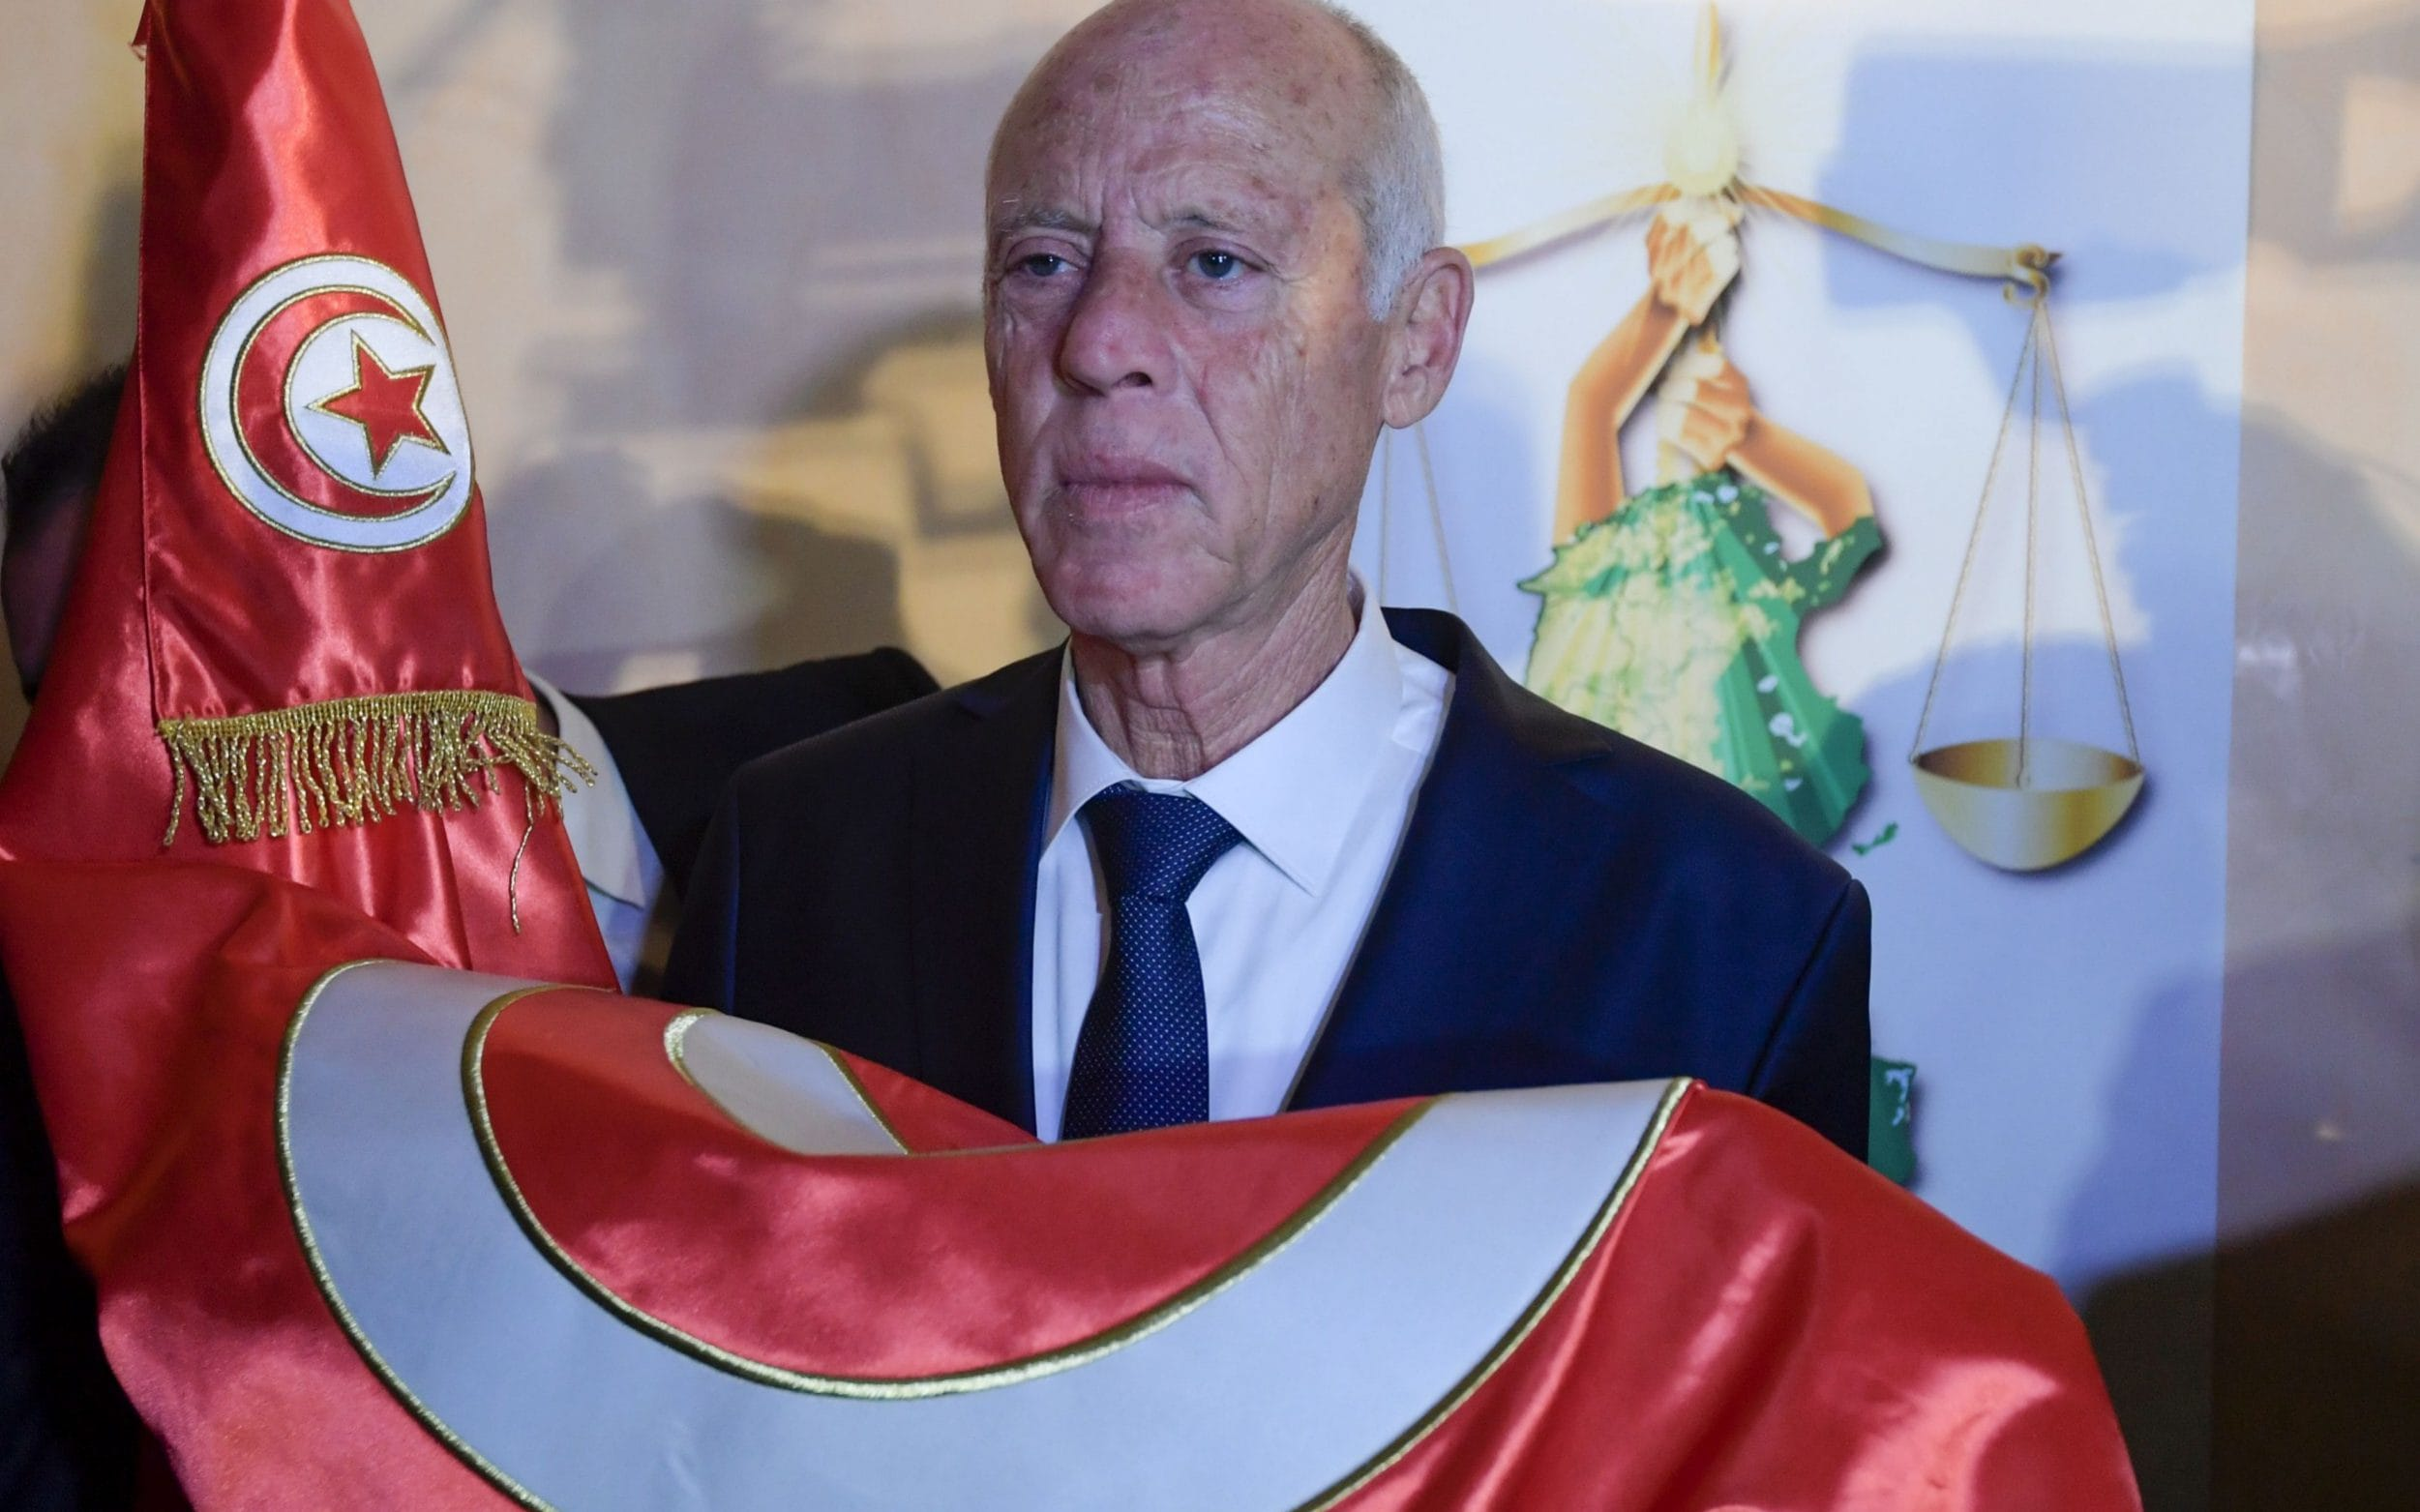 A conservative jurist and a tycoon, face to face in the second round of the presidential elections in Tunisia